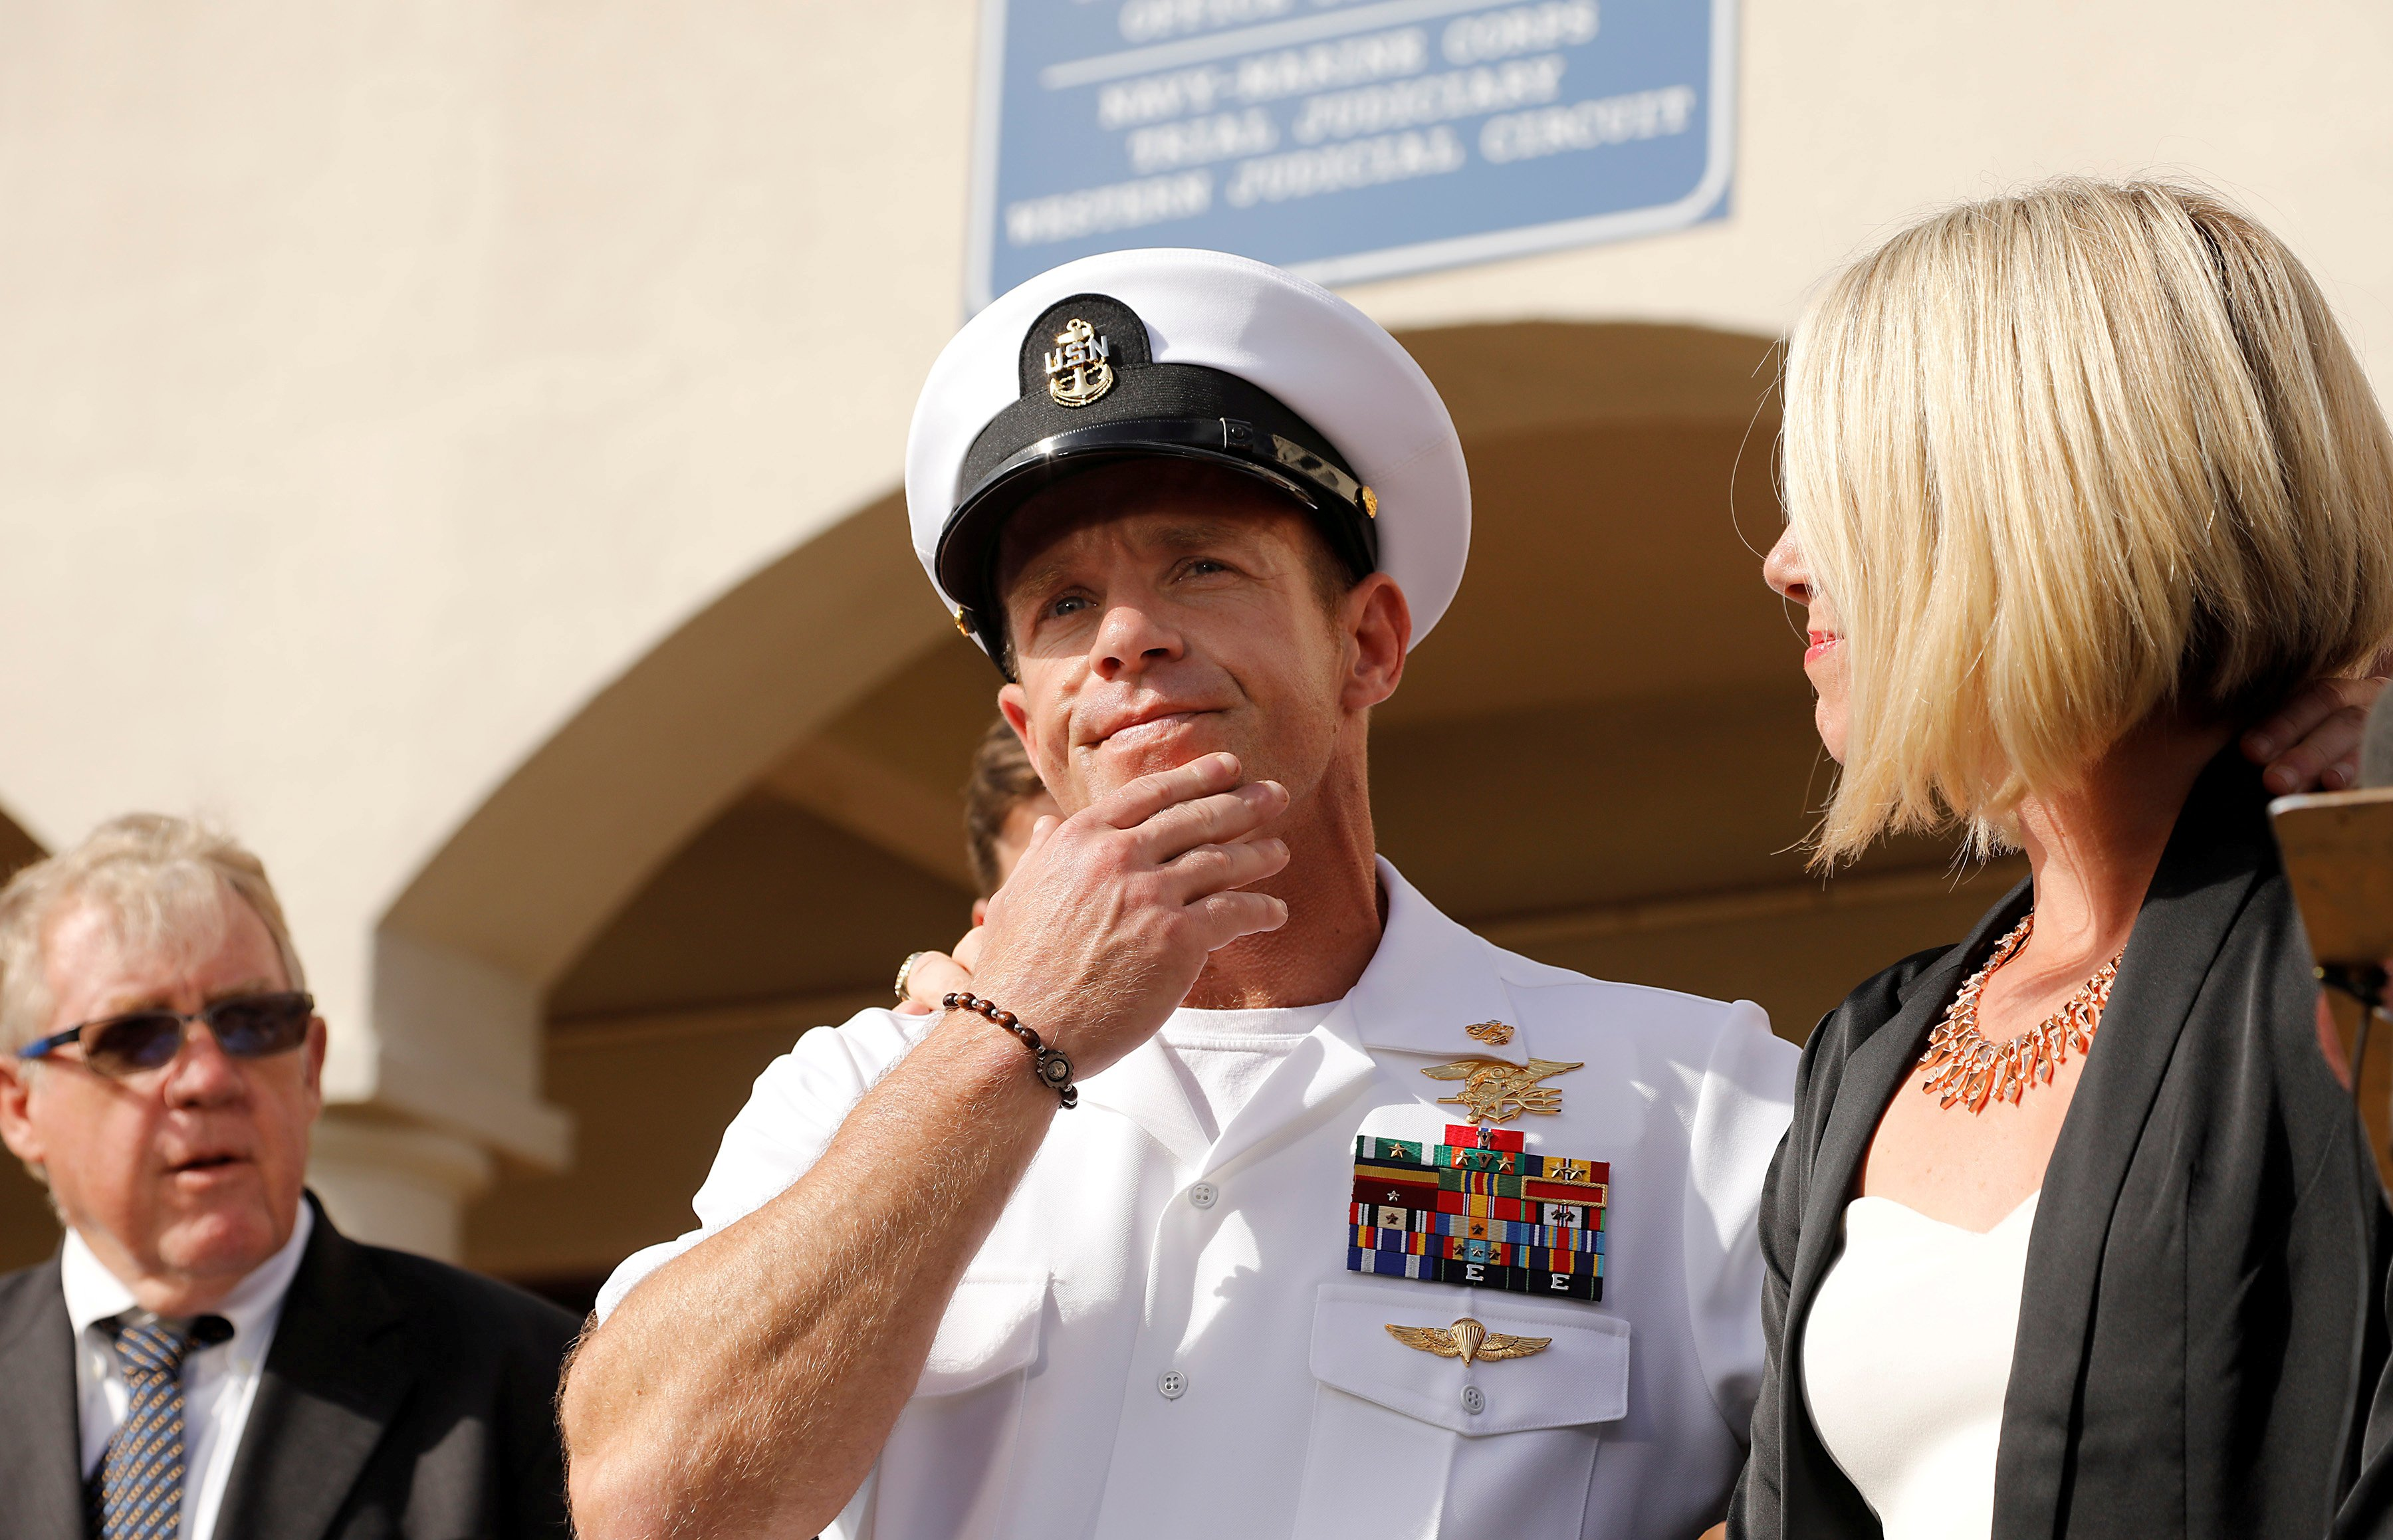 FILE PHOTO: U.S. Navy SEAL Special Operations Chief Edward Gallagher prepares to answer a question from the media with wife Andrea Gallagher after being acquitted on most of the serious charges against him during his court-martial trial at Naval Base San Diego in San Diego, California, U.S., July 2, 2019. REUTERS/John Gastaldo/File Photo